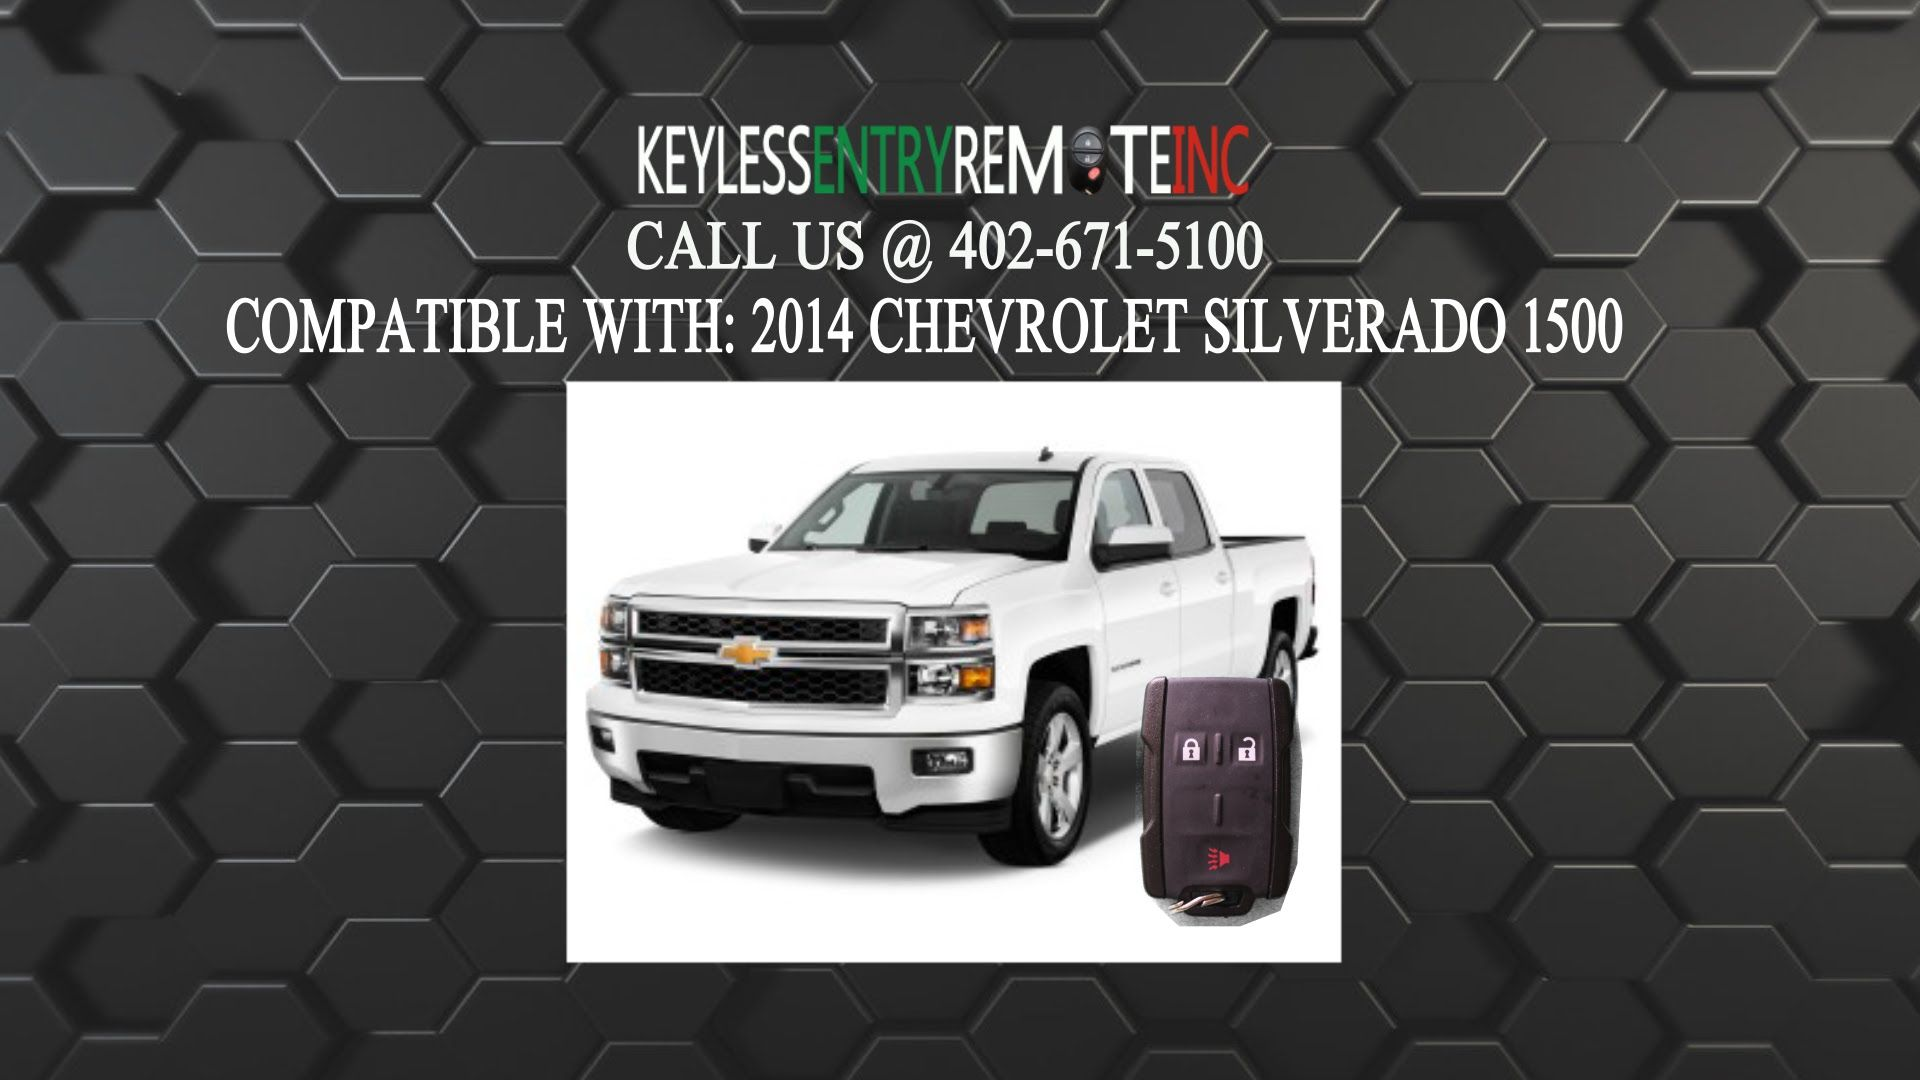 How To Replace A 2014 2016 Chevrolet Silverado Key Fob Battery